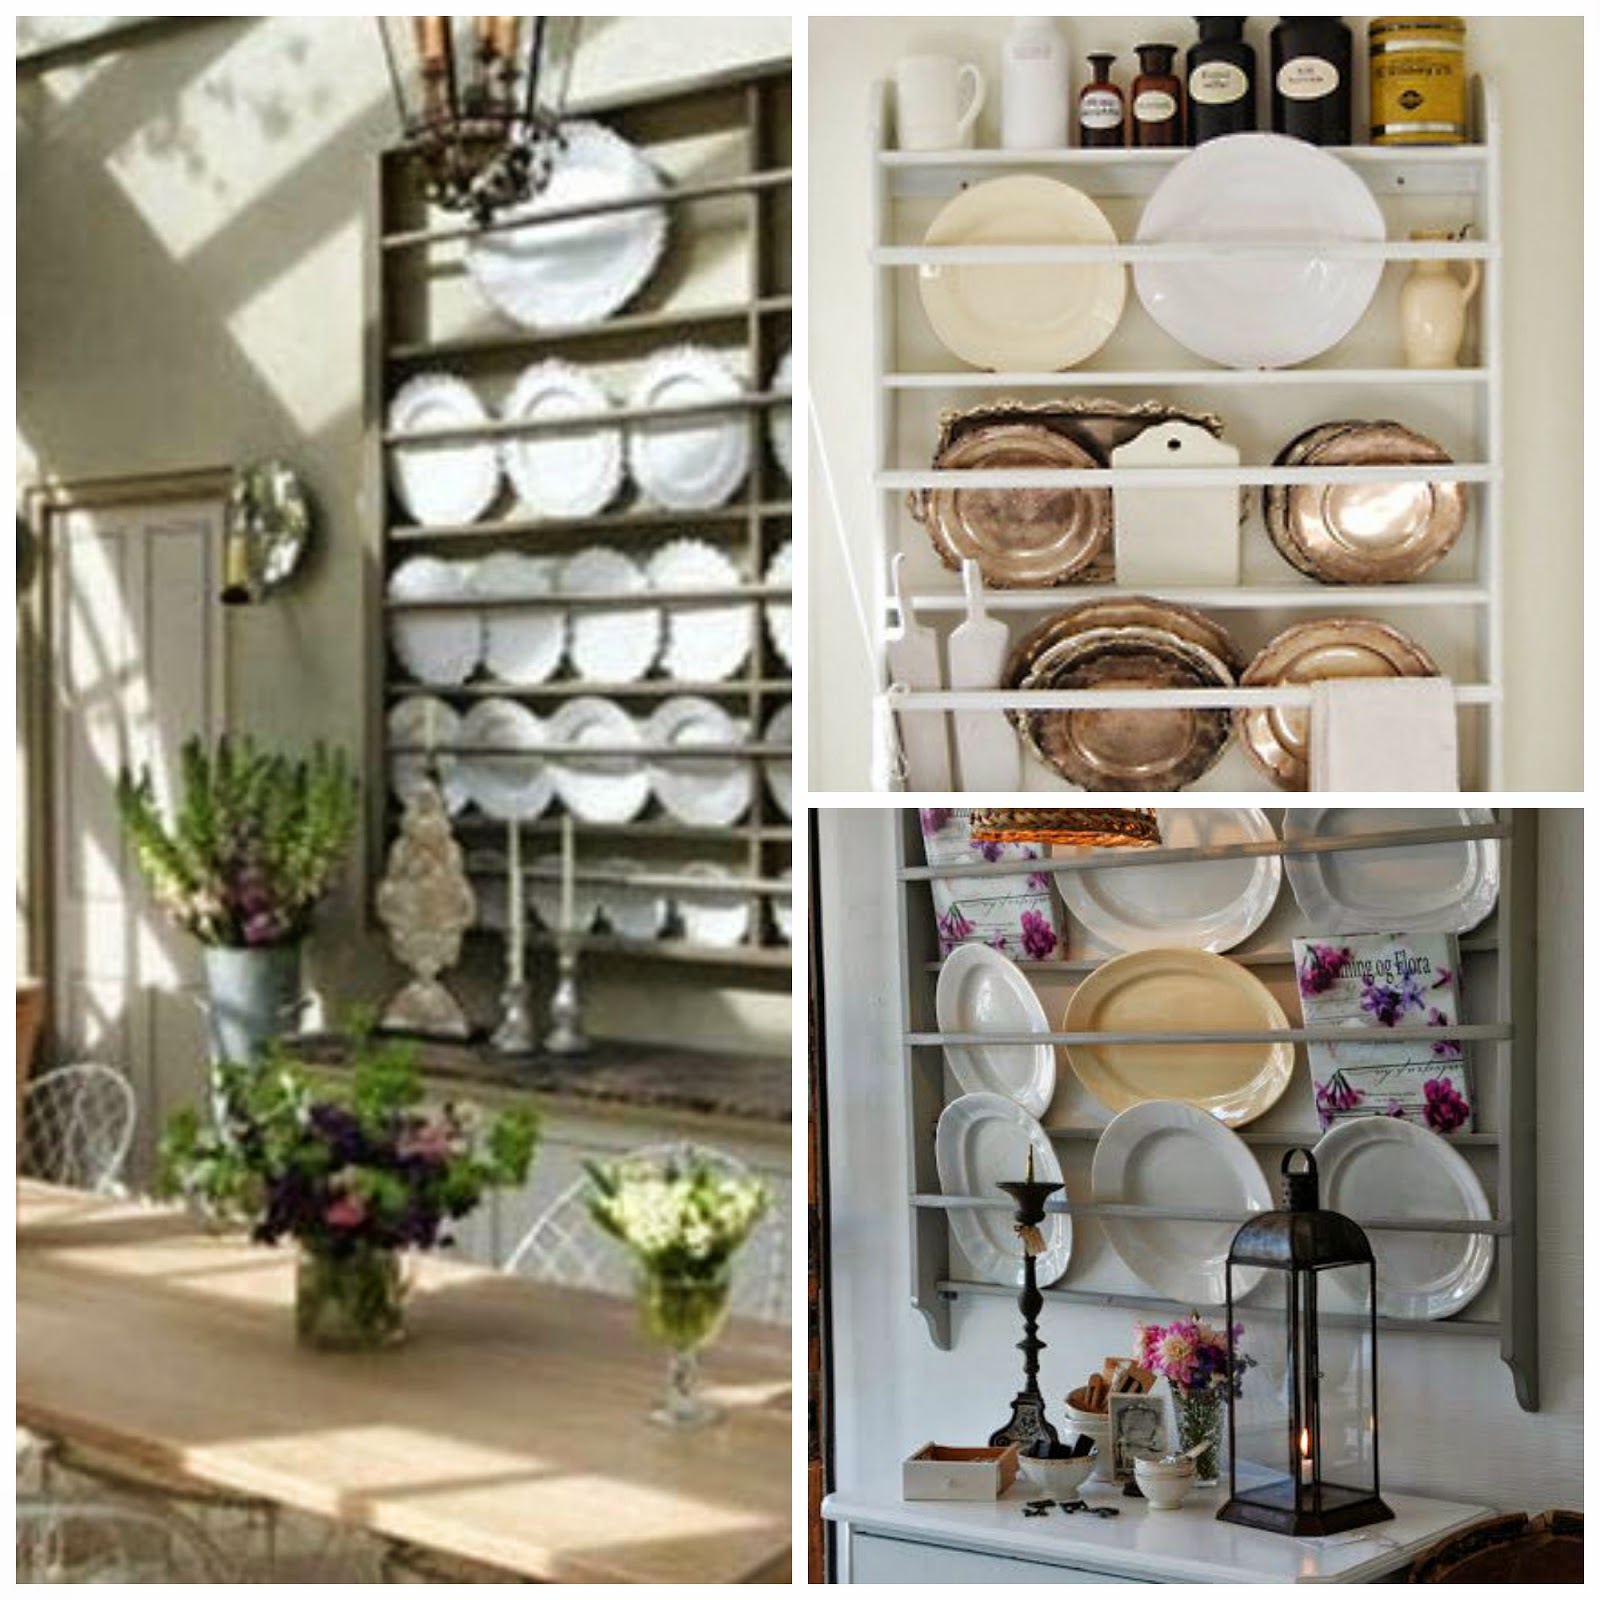 It seems like the majority of the Swedish homes have a plate rack and style it with beautiful plates and knick knacks and an occasional tea towel draped ... & A Little Paint A Little Spackle...: Plate Rack